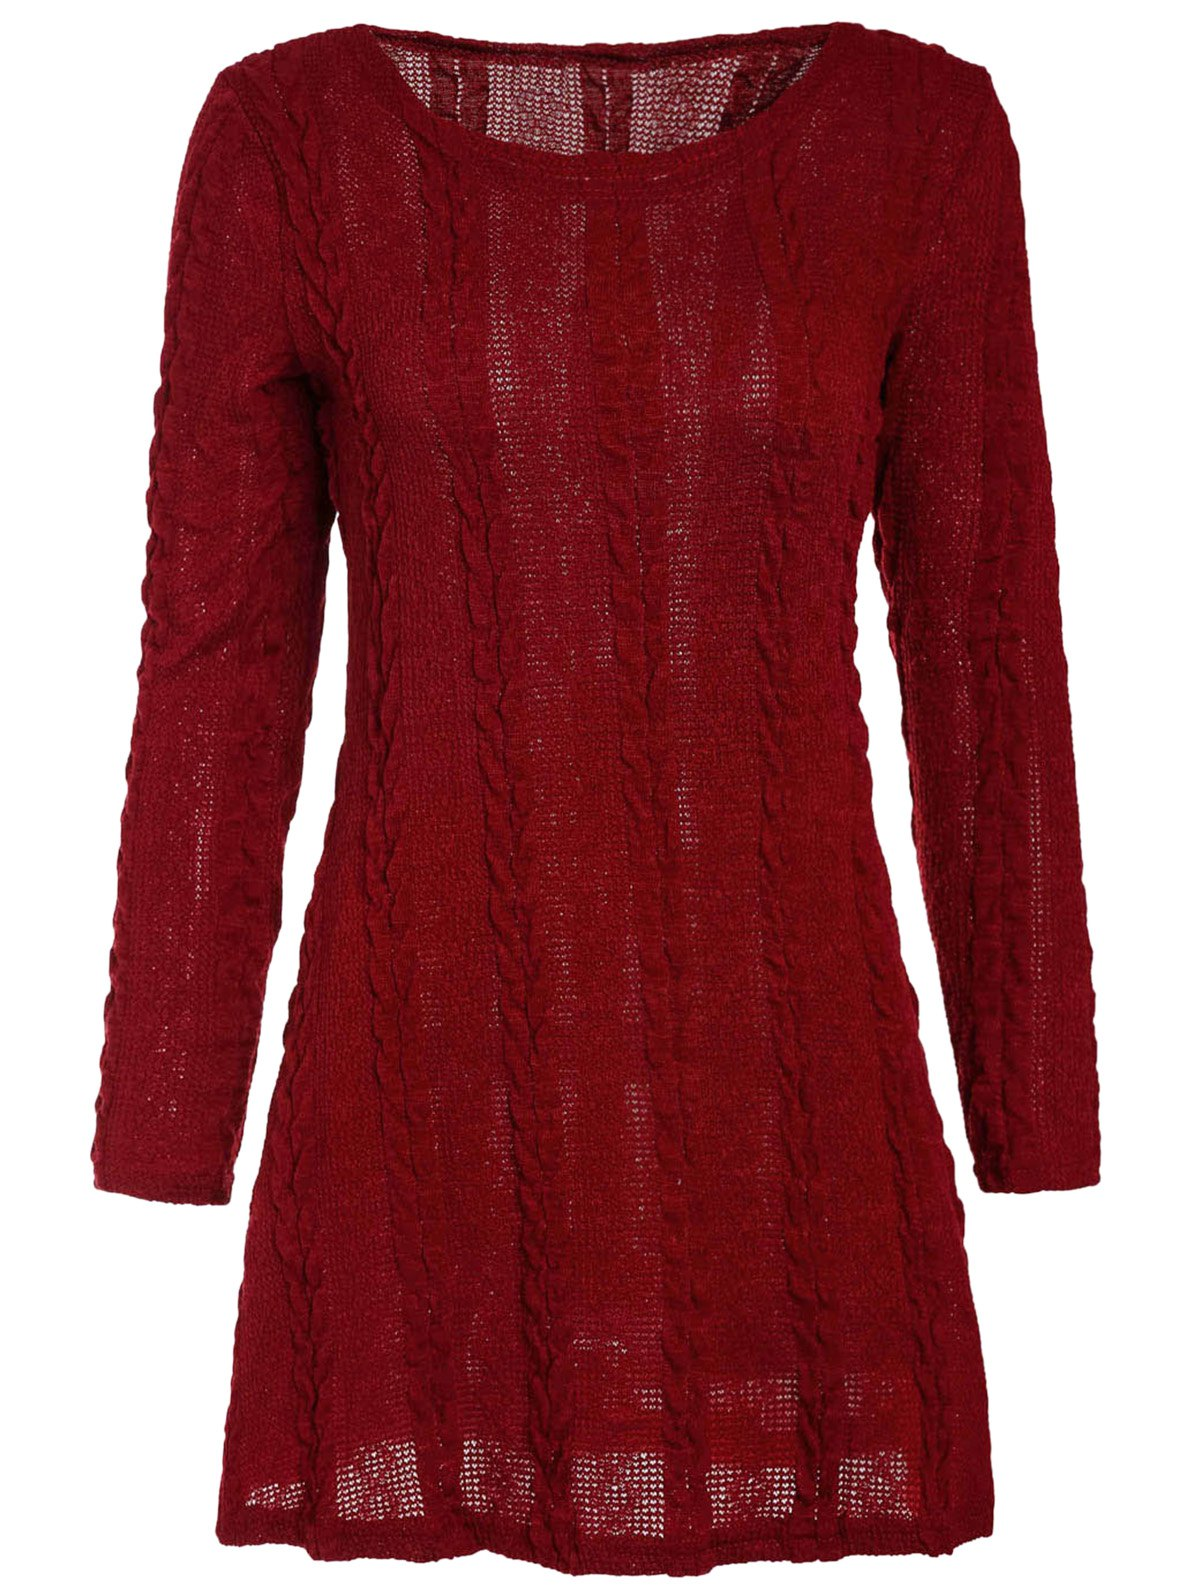 Brief A-Line Scoop Neck Long Sleeve Dress For Women - WINE RED S